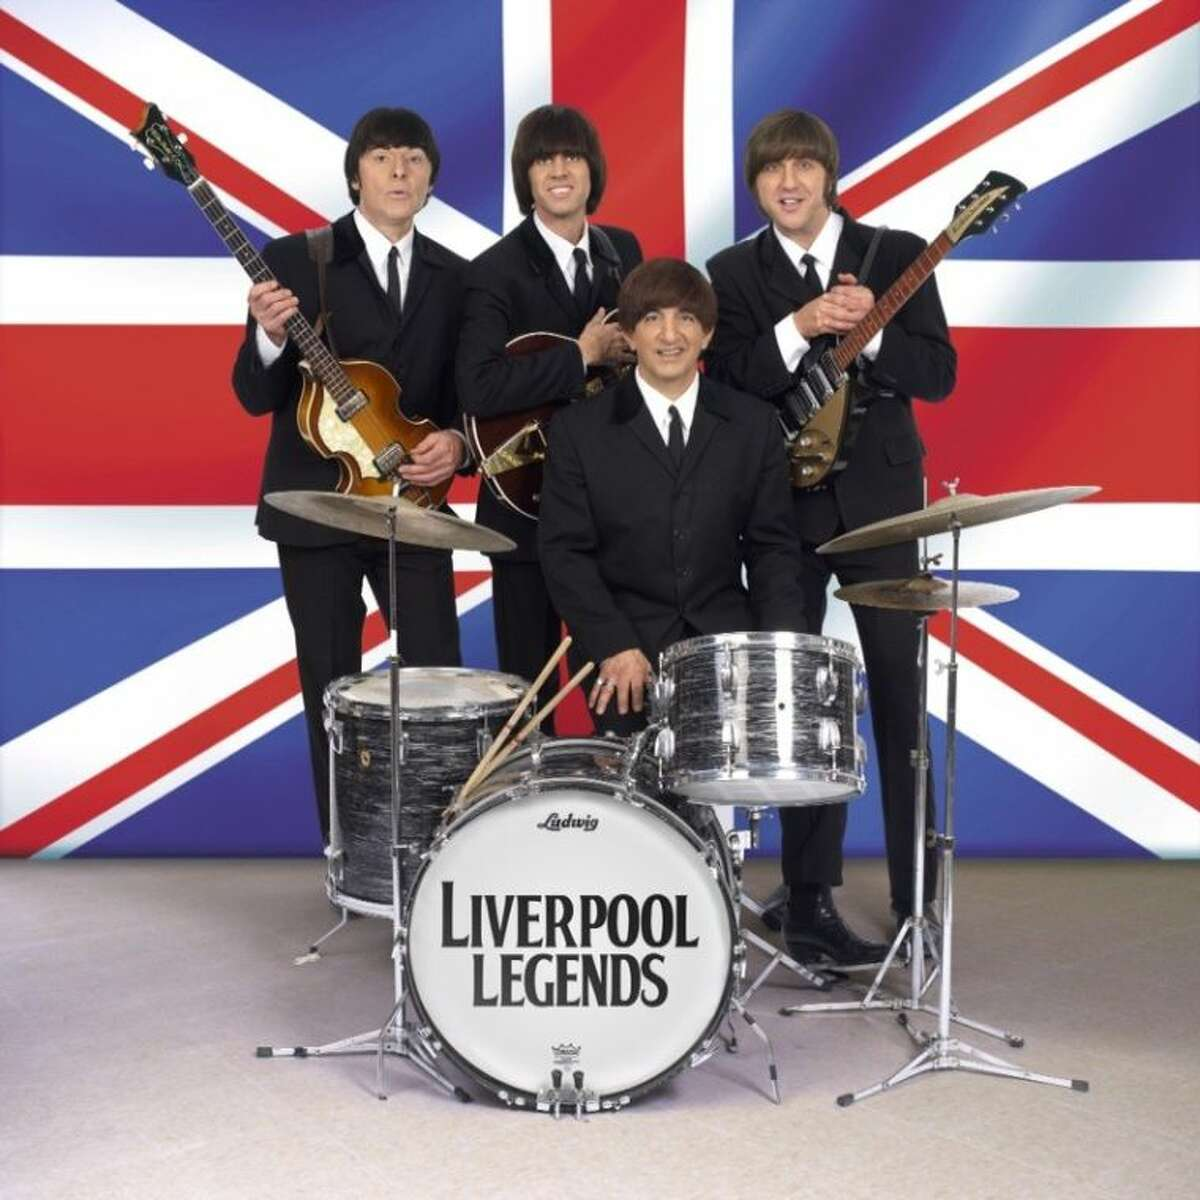 Liverpool Legends Beatles Tribute Band are four talented musicians and actors who were hand-picked by Louise Harrison - sister of the late George Harrison of The Beatles. The group will perform on Nov. 2 at the Stafford Centre.